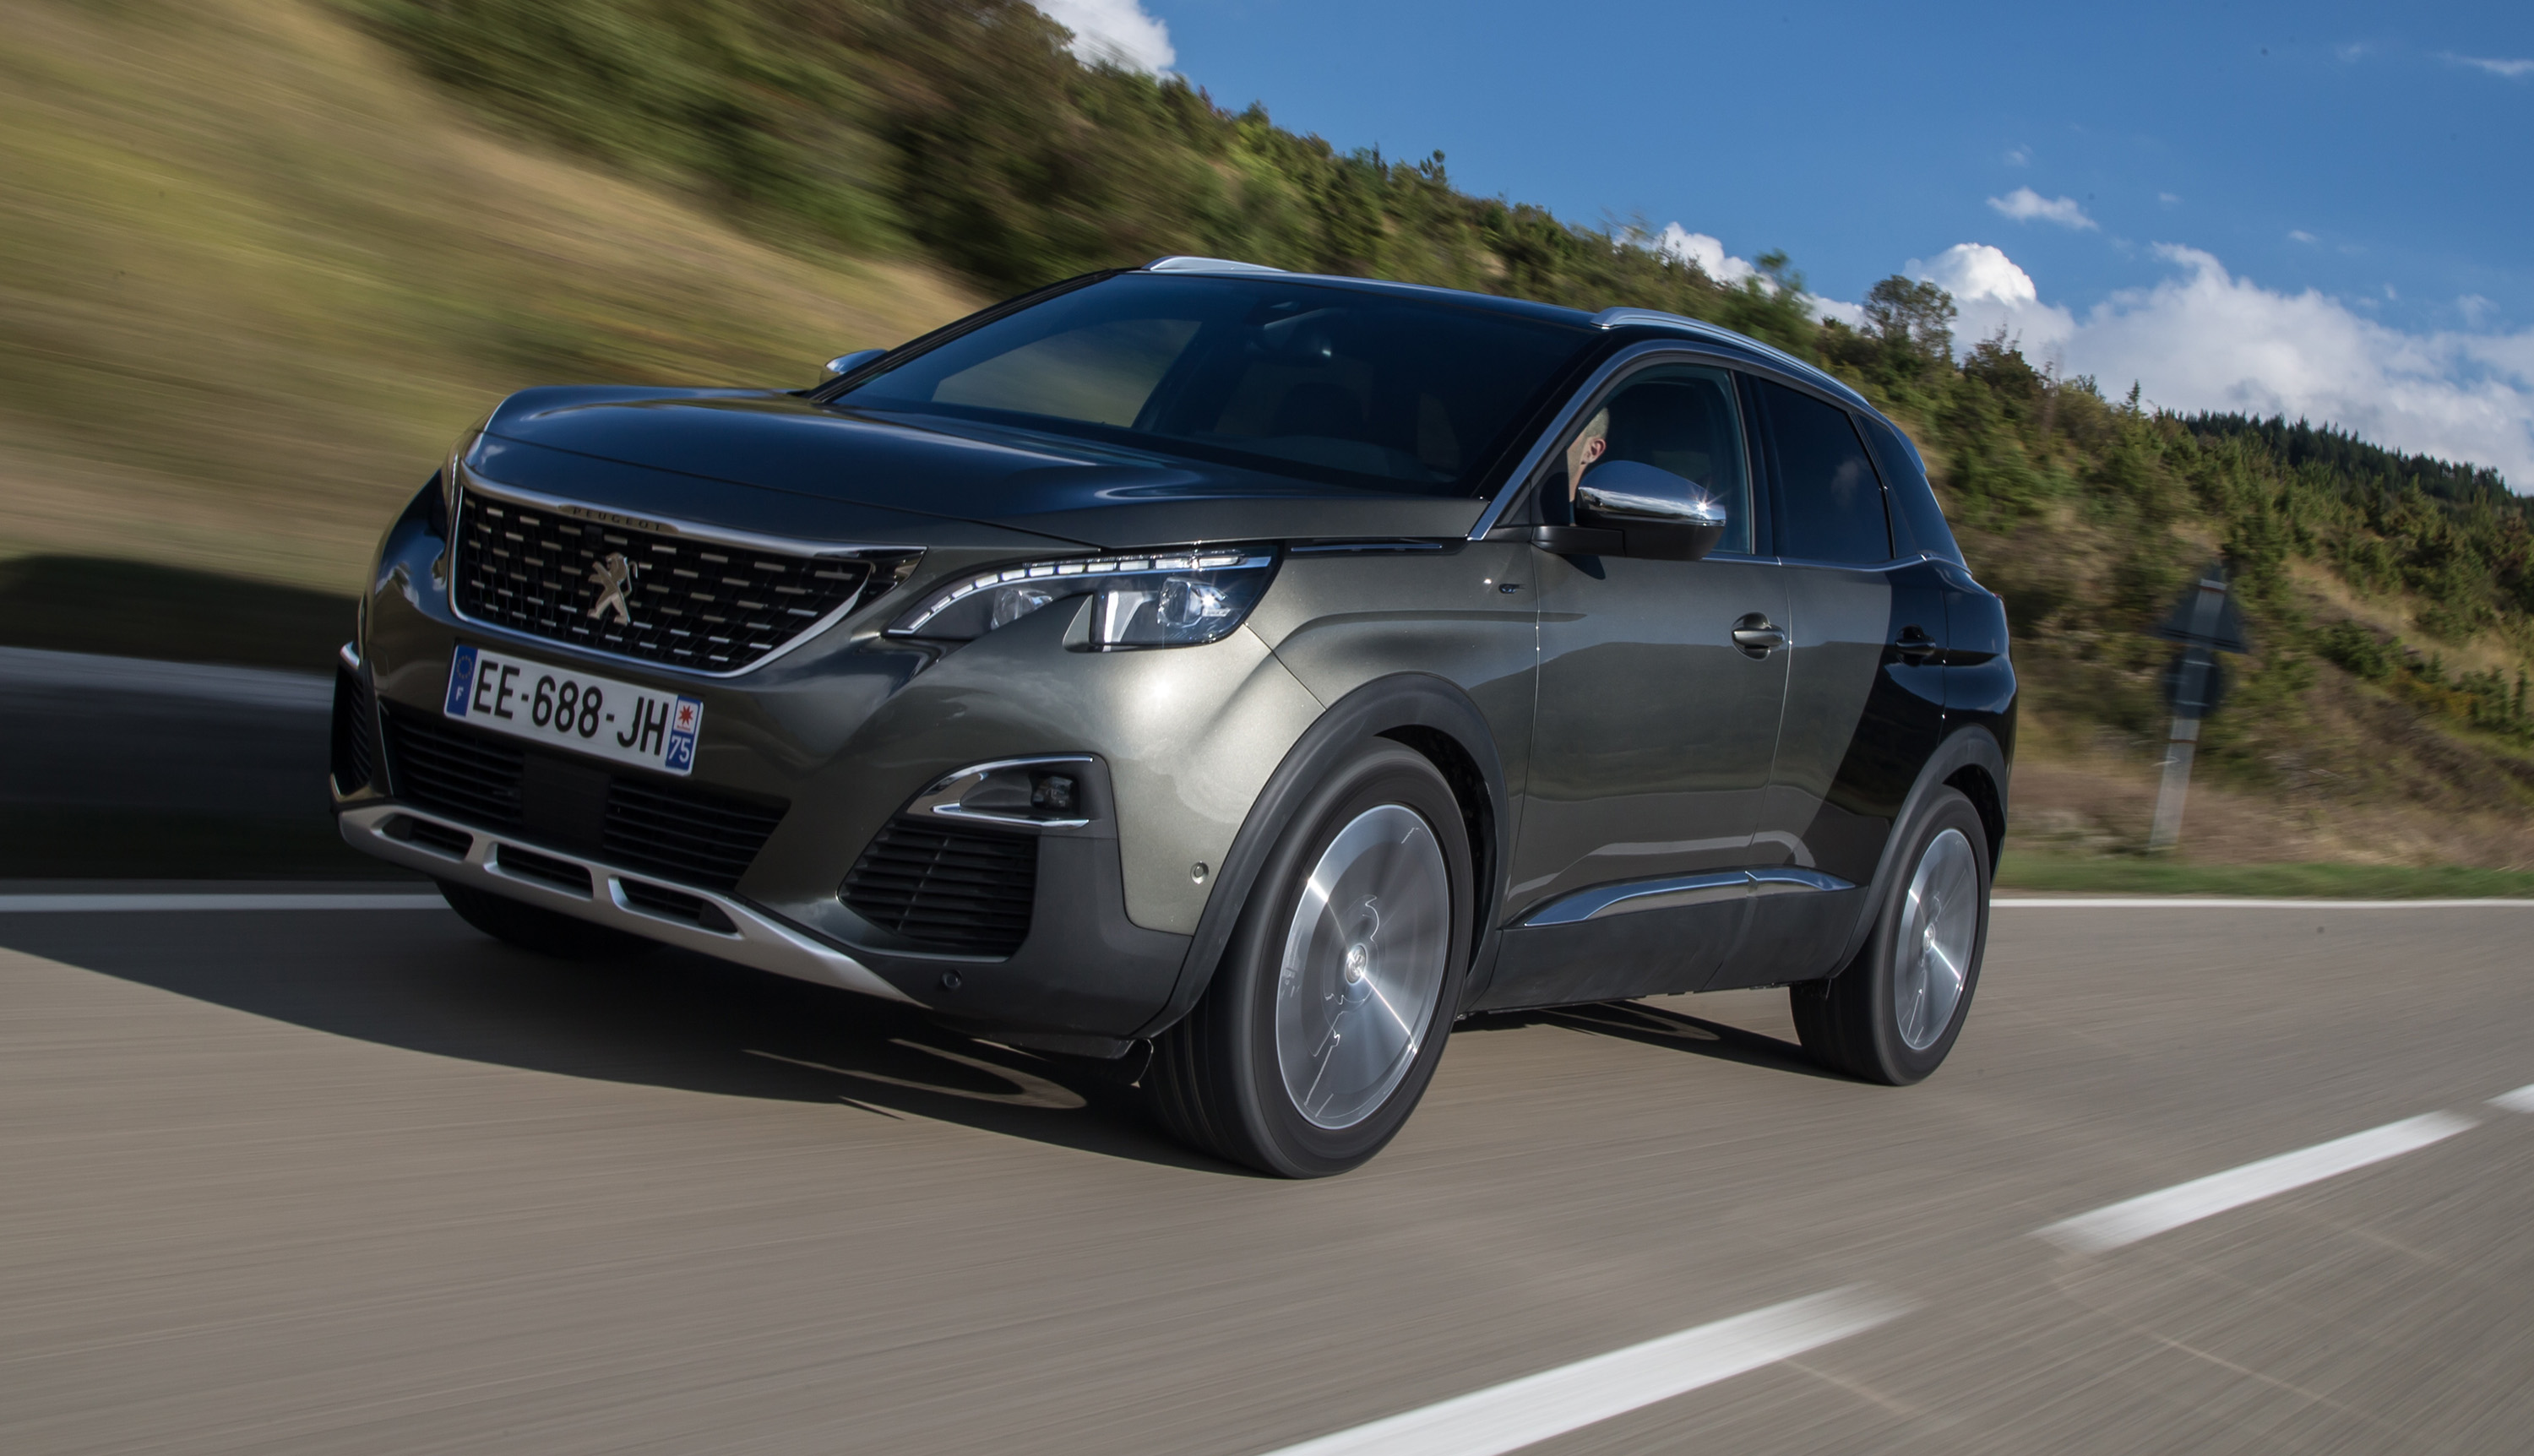 Five Star Hyundai >> 2018 Peugeot 3008 gets five-star ANCAP crash score - photos | CarAdvice